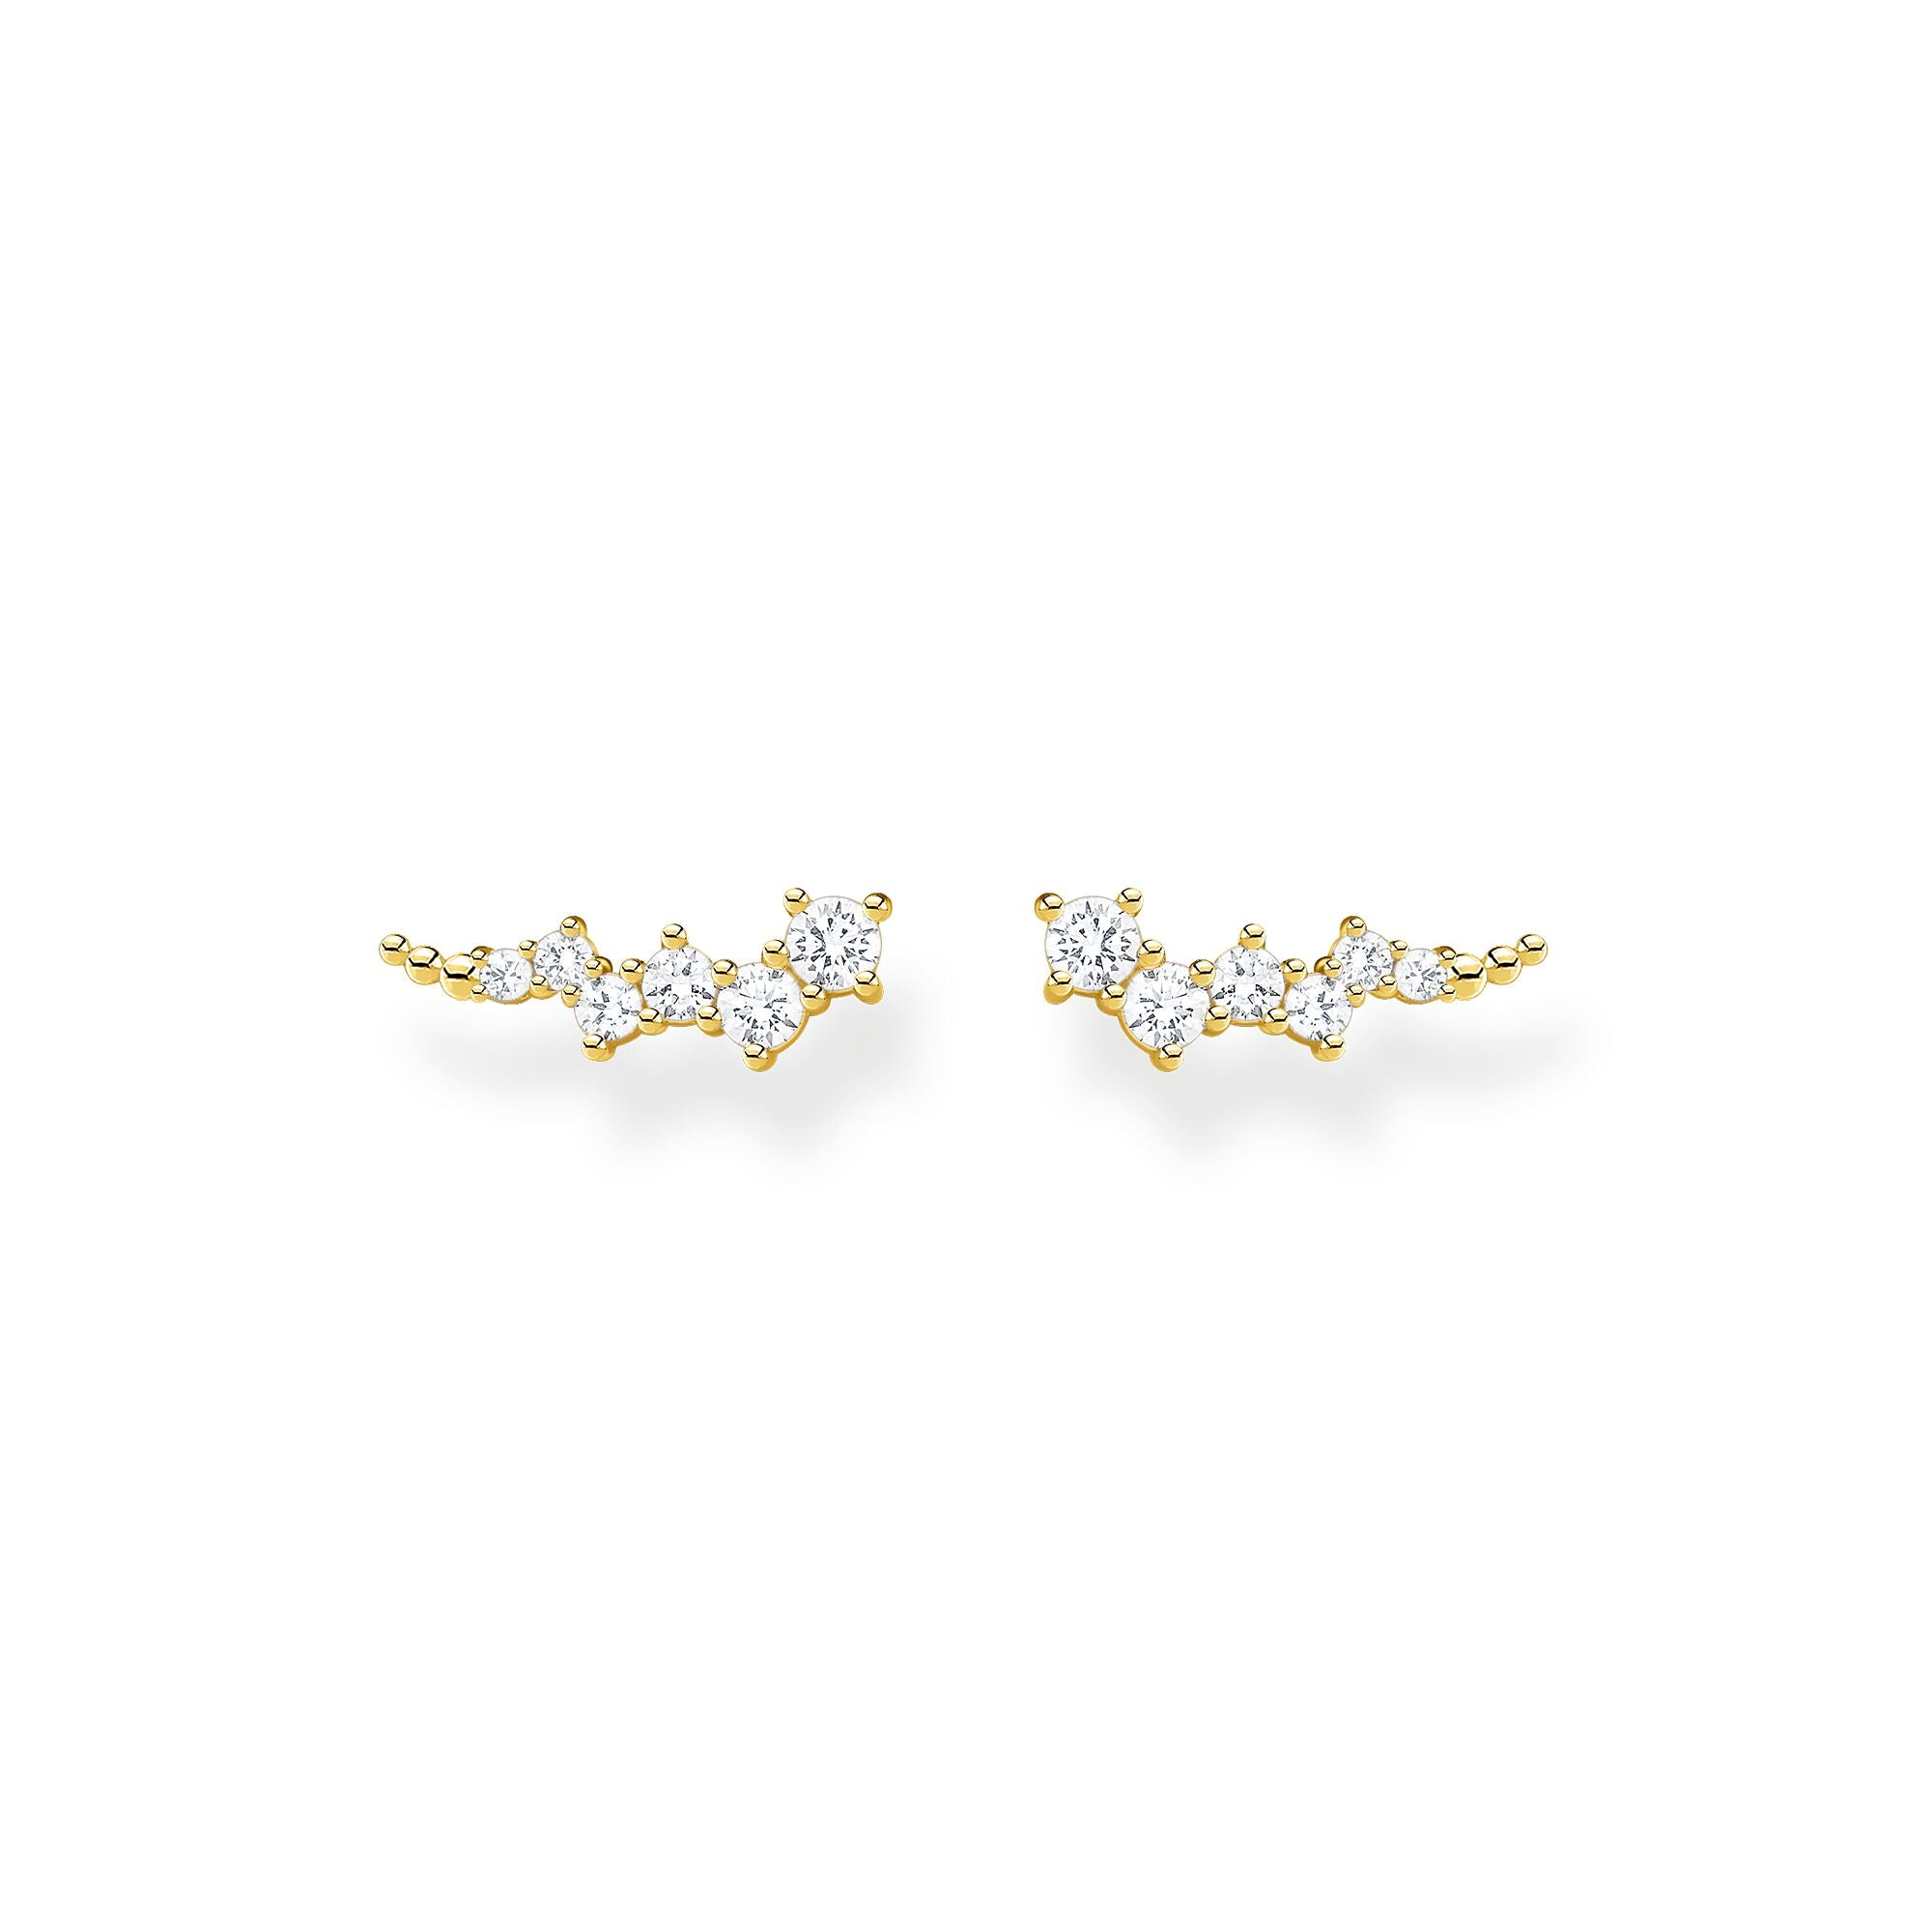 STERLING SILVER YELLOW GOLD PLATED CHARMING COLLECTION CZ STAR EAR CLIMBER EARRINGS